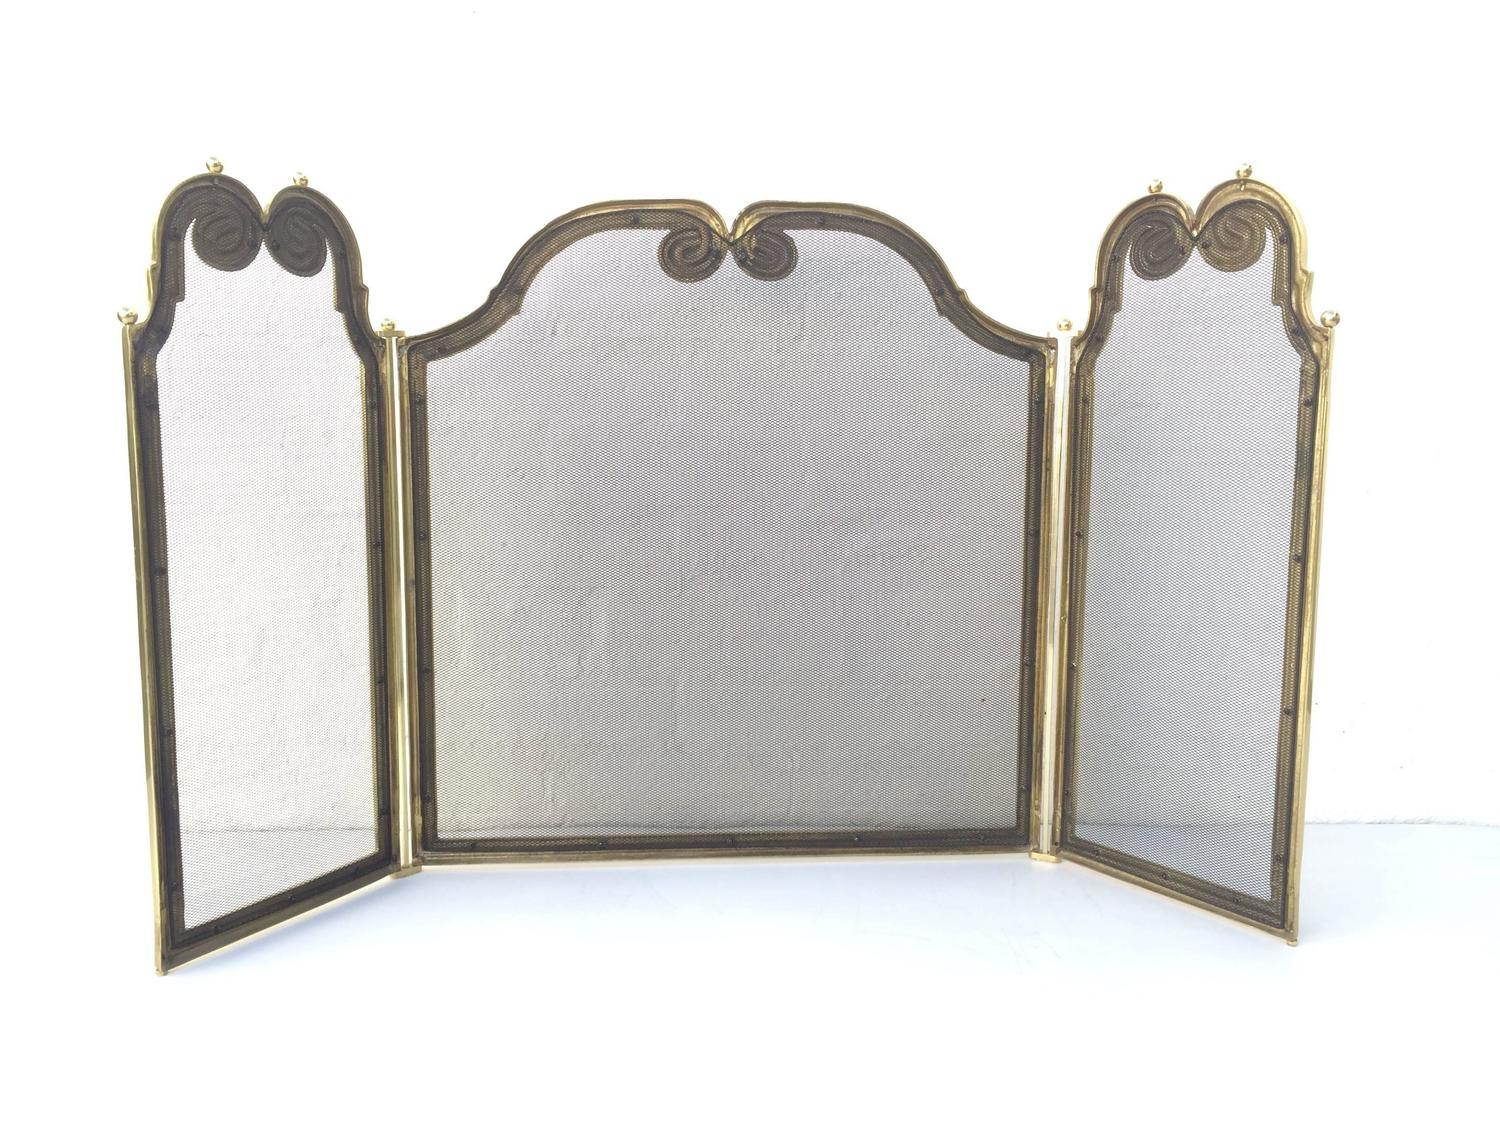 Brass Fireplace Screen For Sale At 1stdibs